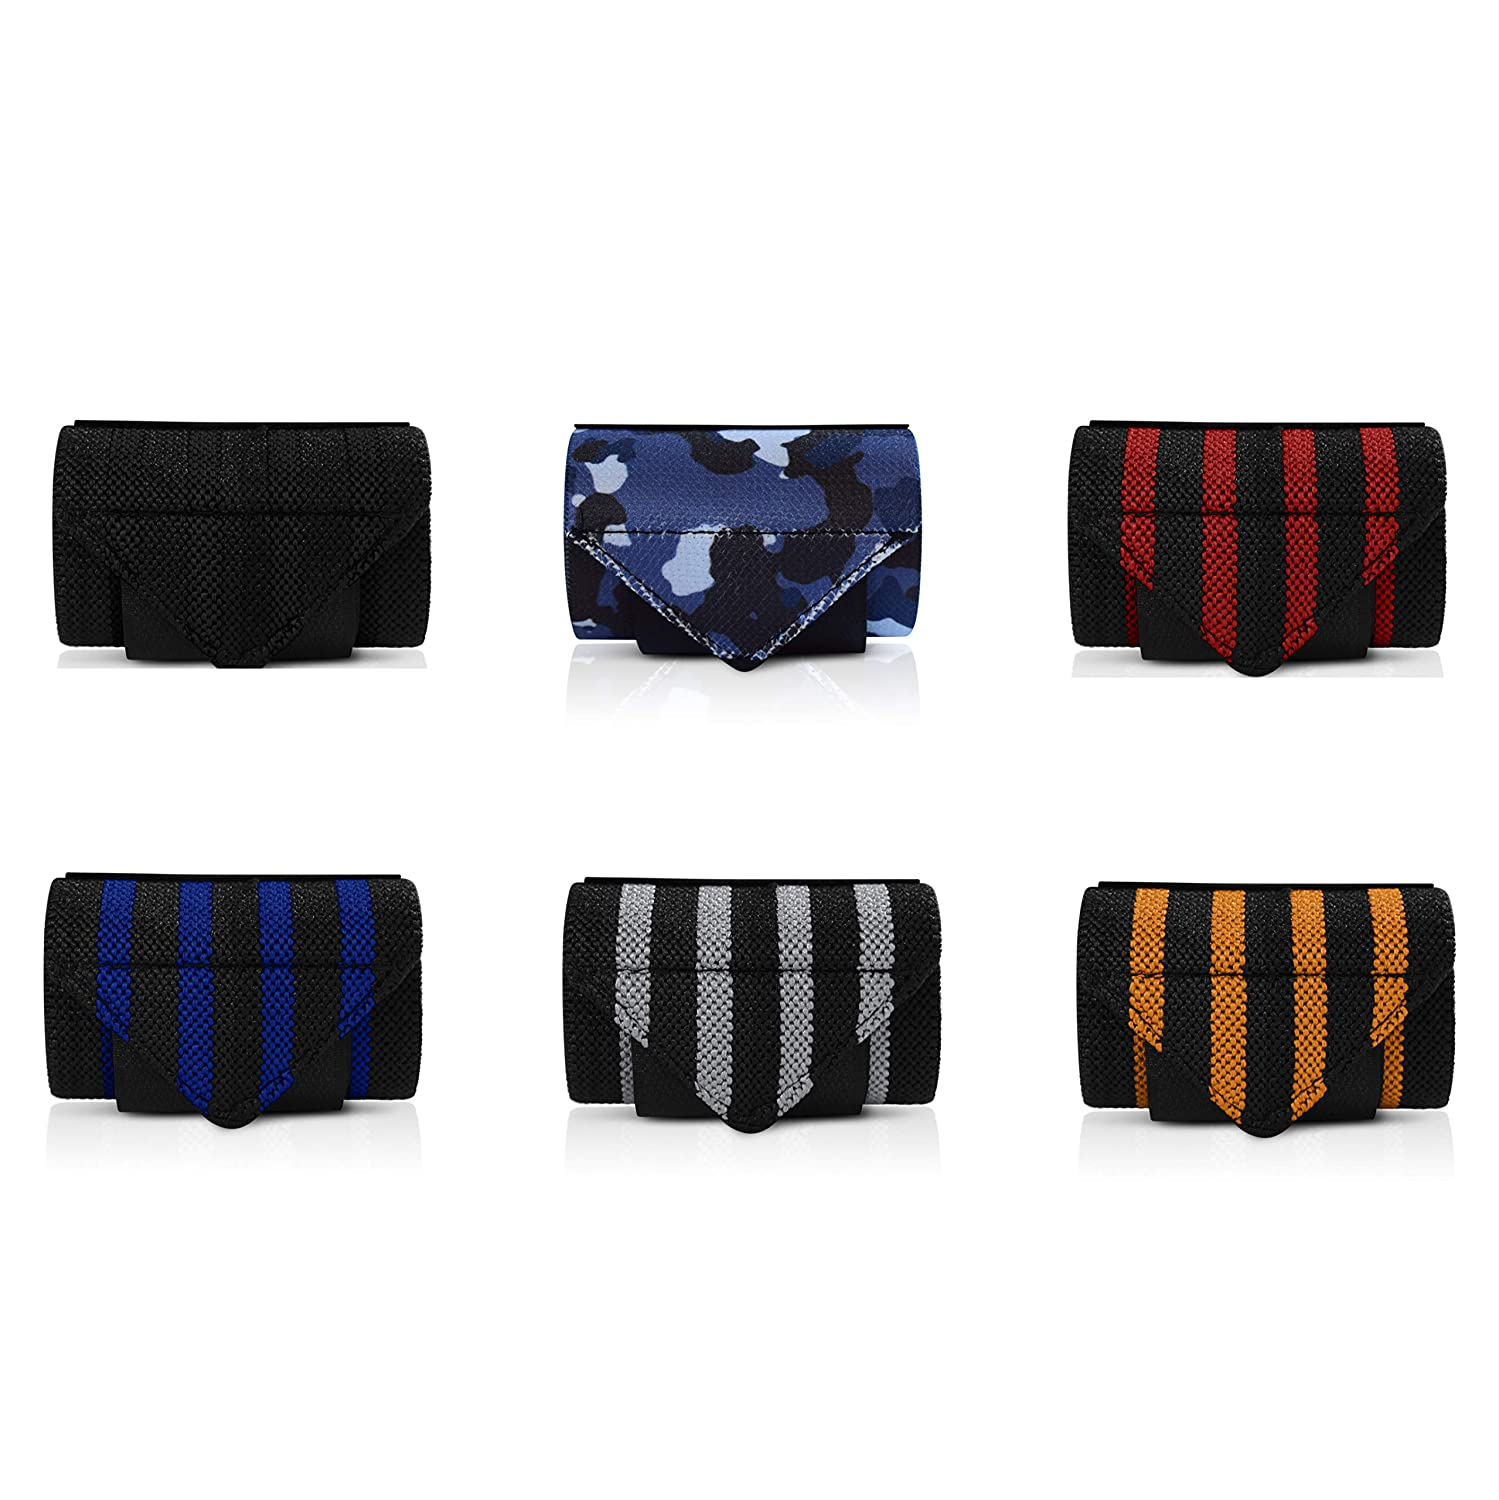 Blue Orange Yoga and Strength Training Powerlifting 20 Inch Wrist Wraps for Weight Lifting Bodybuilding Blue Camo. Professional Grade Wrist Support Red CrossFit Exercise Black Gray